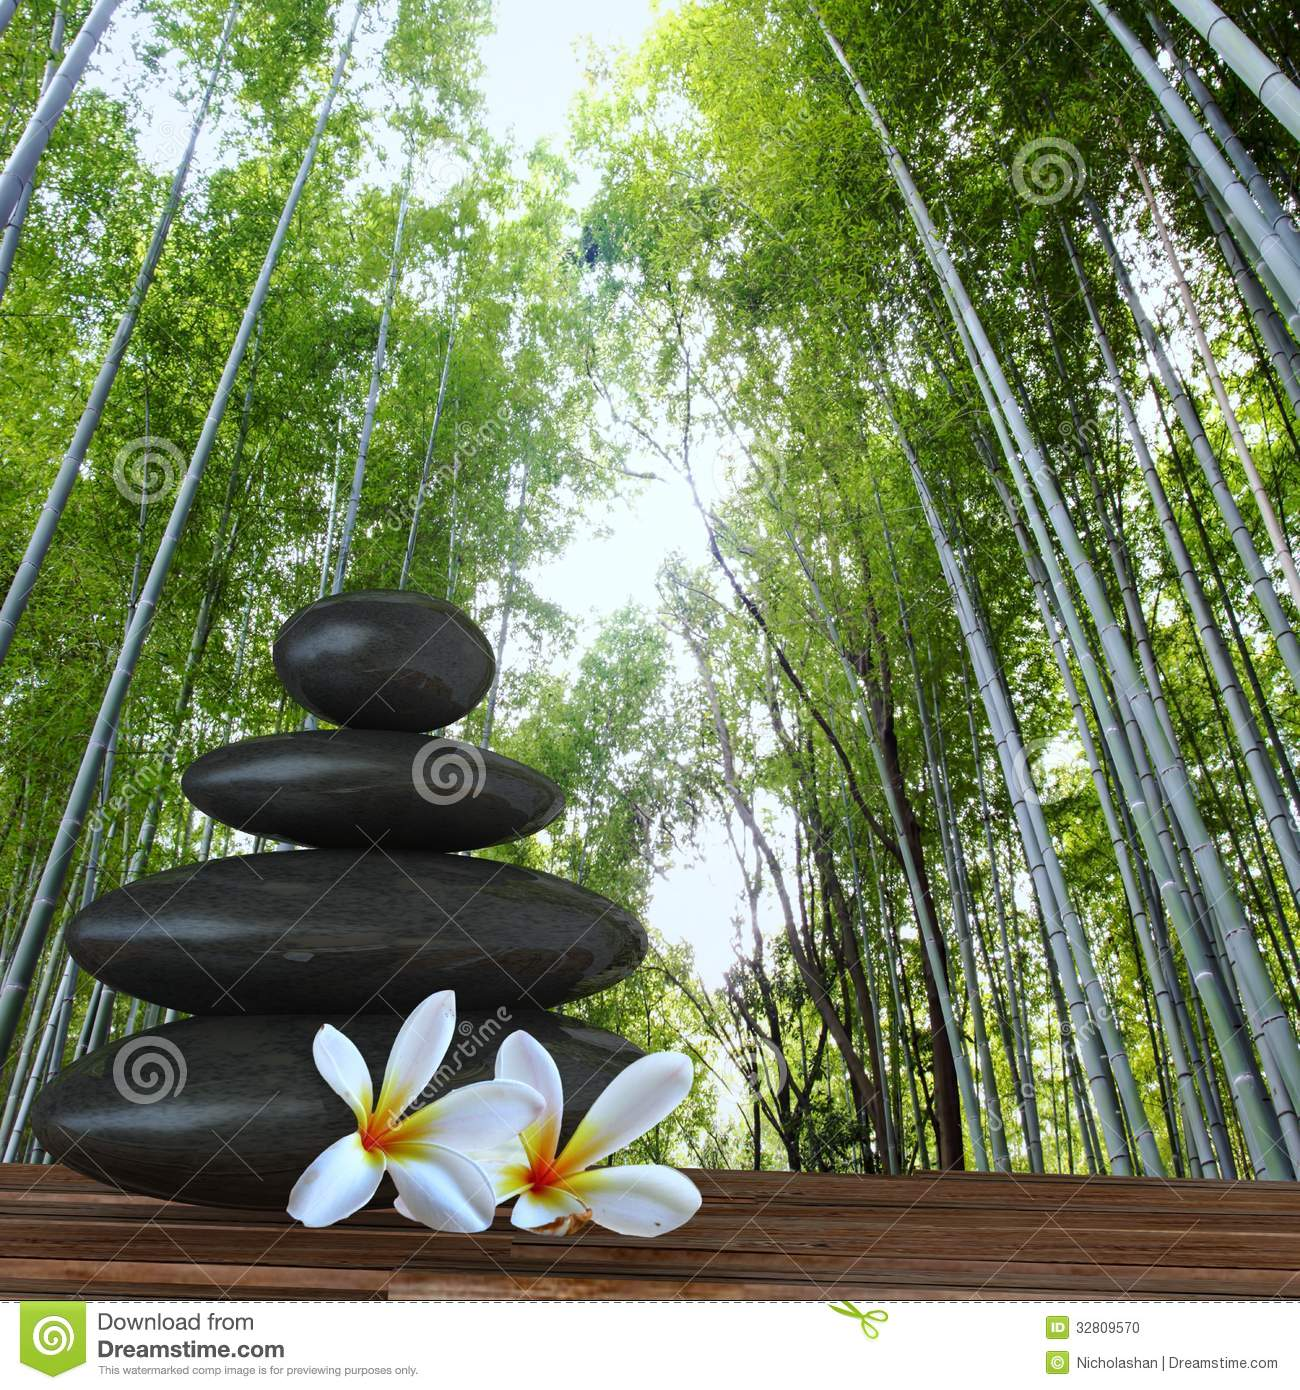 Zen Basalt Stones And Bamboo Zen Stone With Flower In